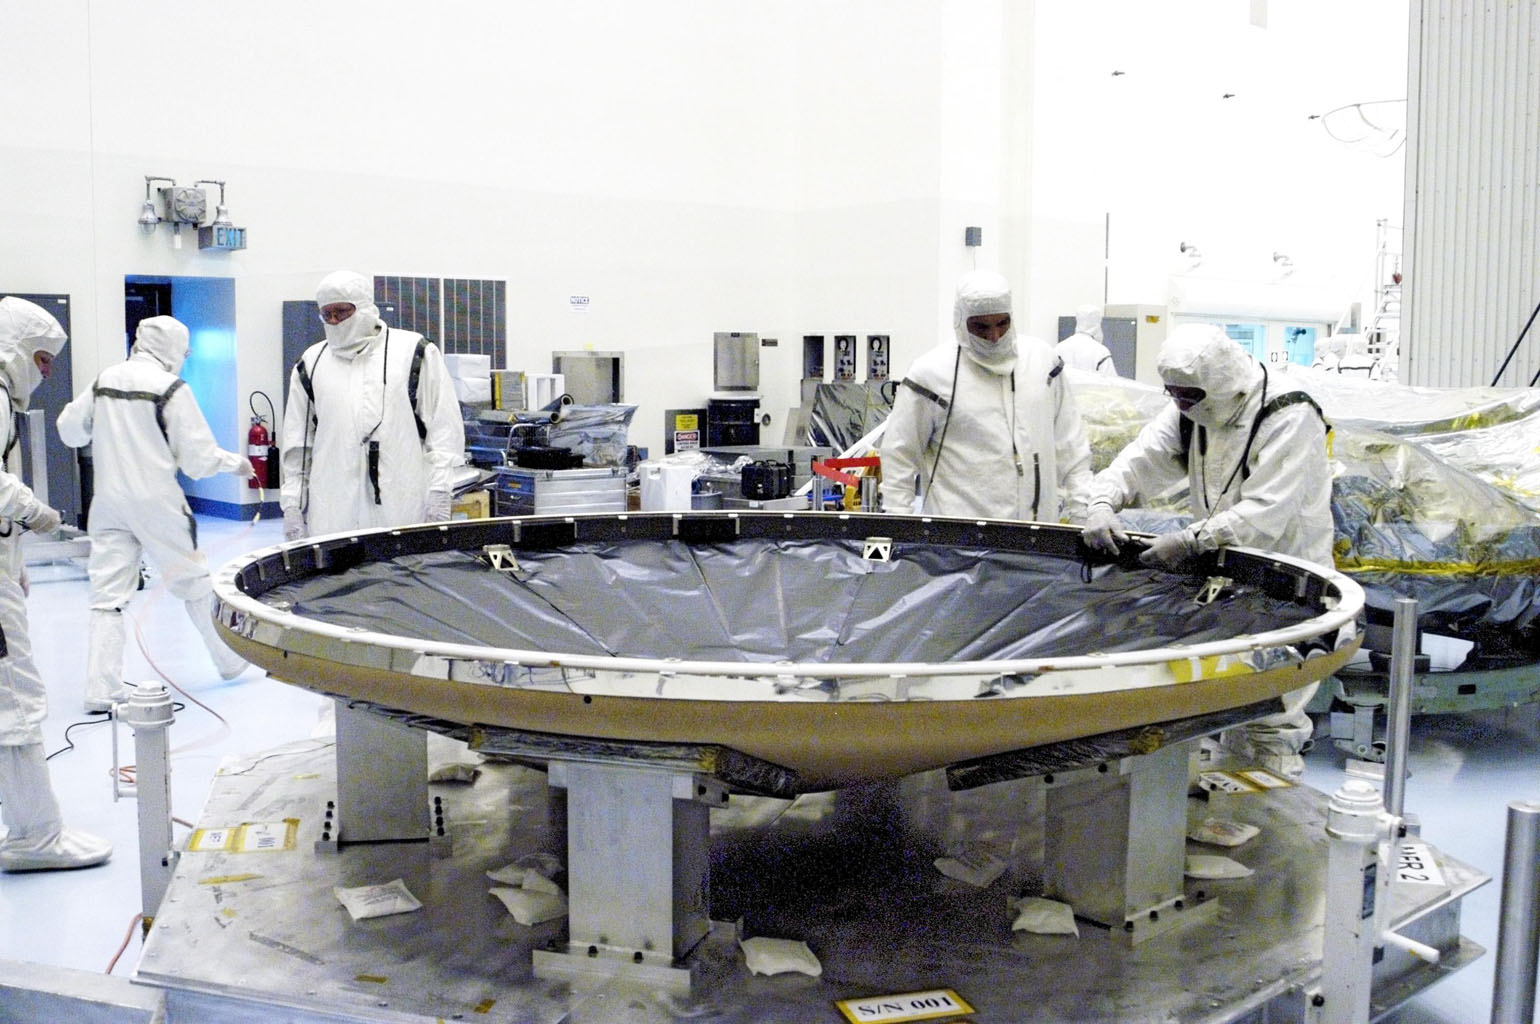 Workers in the Payload Hazardous Servicing Facility prepare the heat shield that will be attached to the backshell, surrounding Mars Exploration Rover 1 (MER-1).